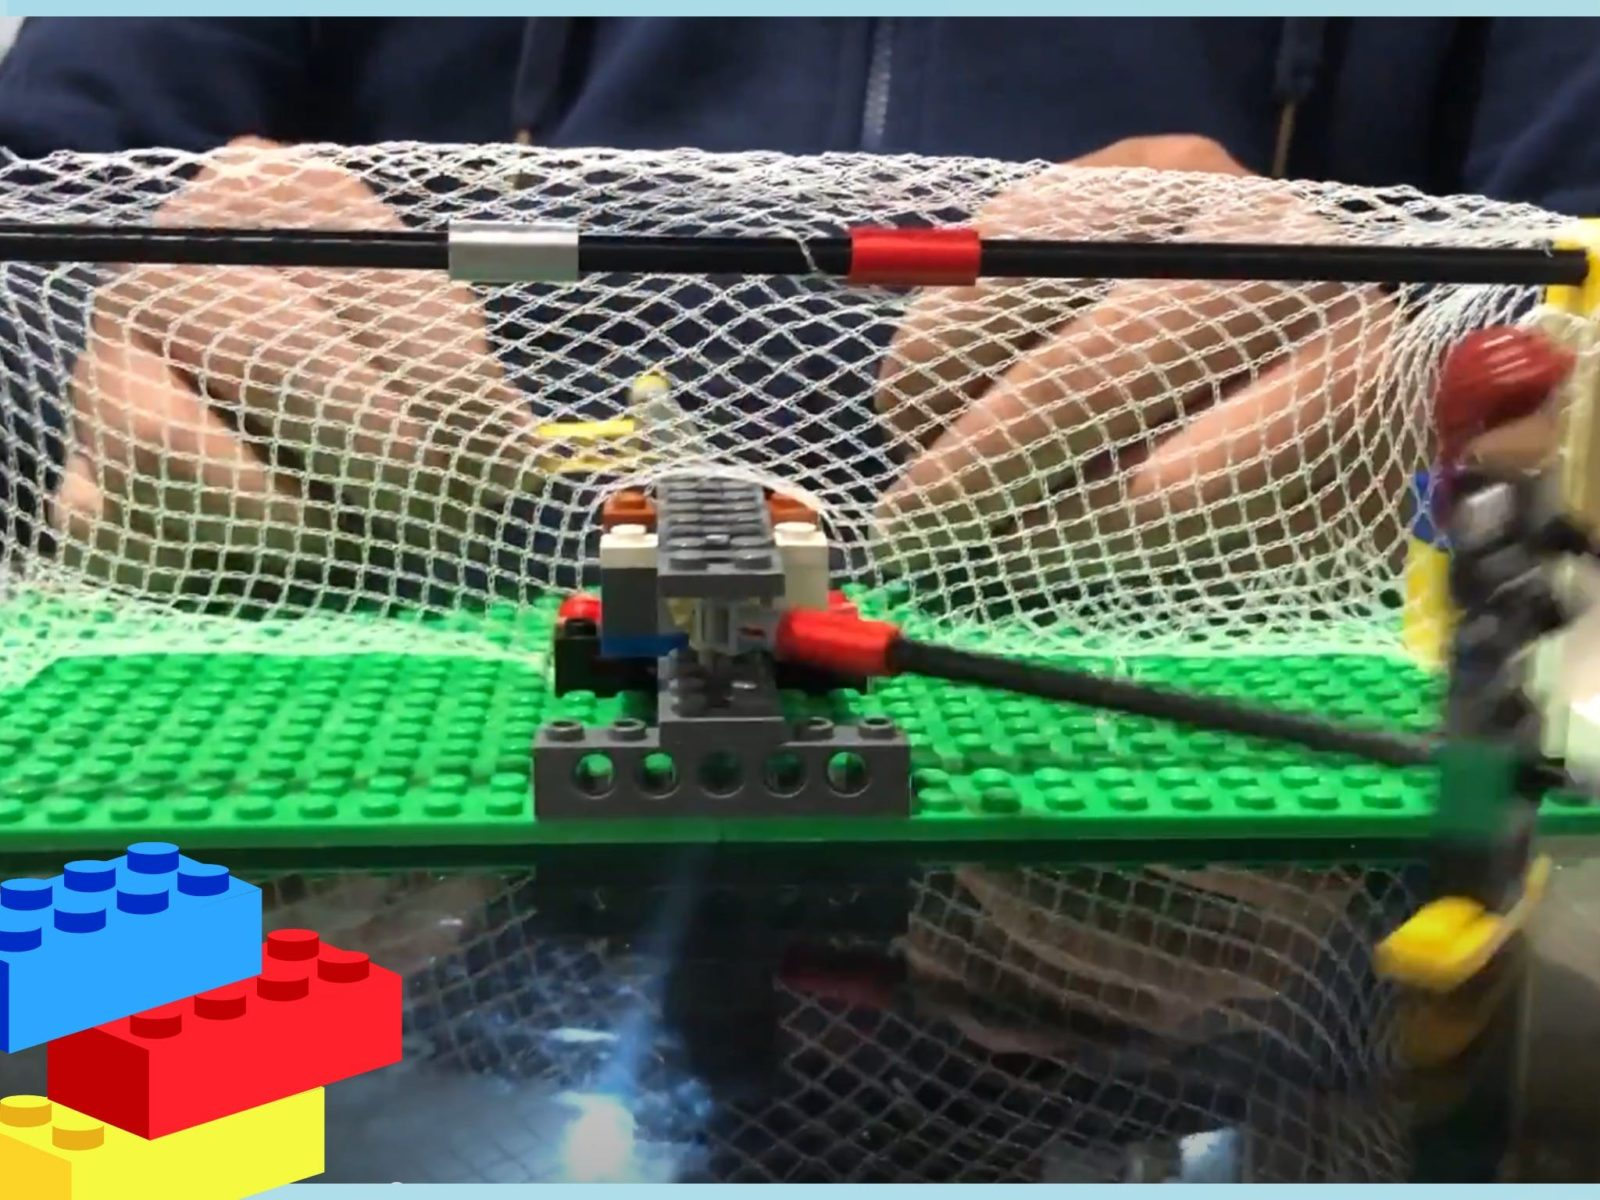 Basketball, soccer & more Lego models and games